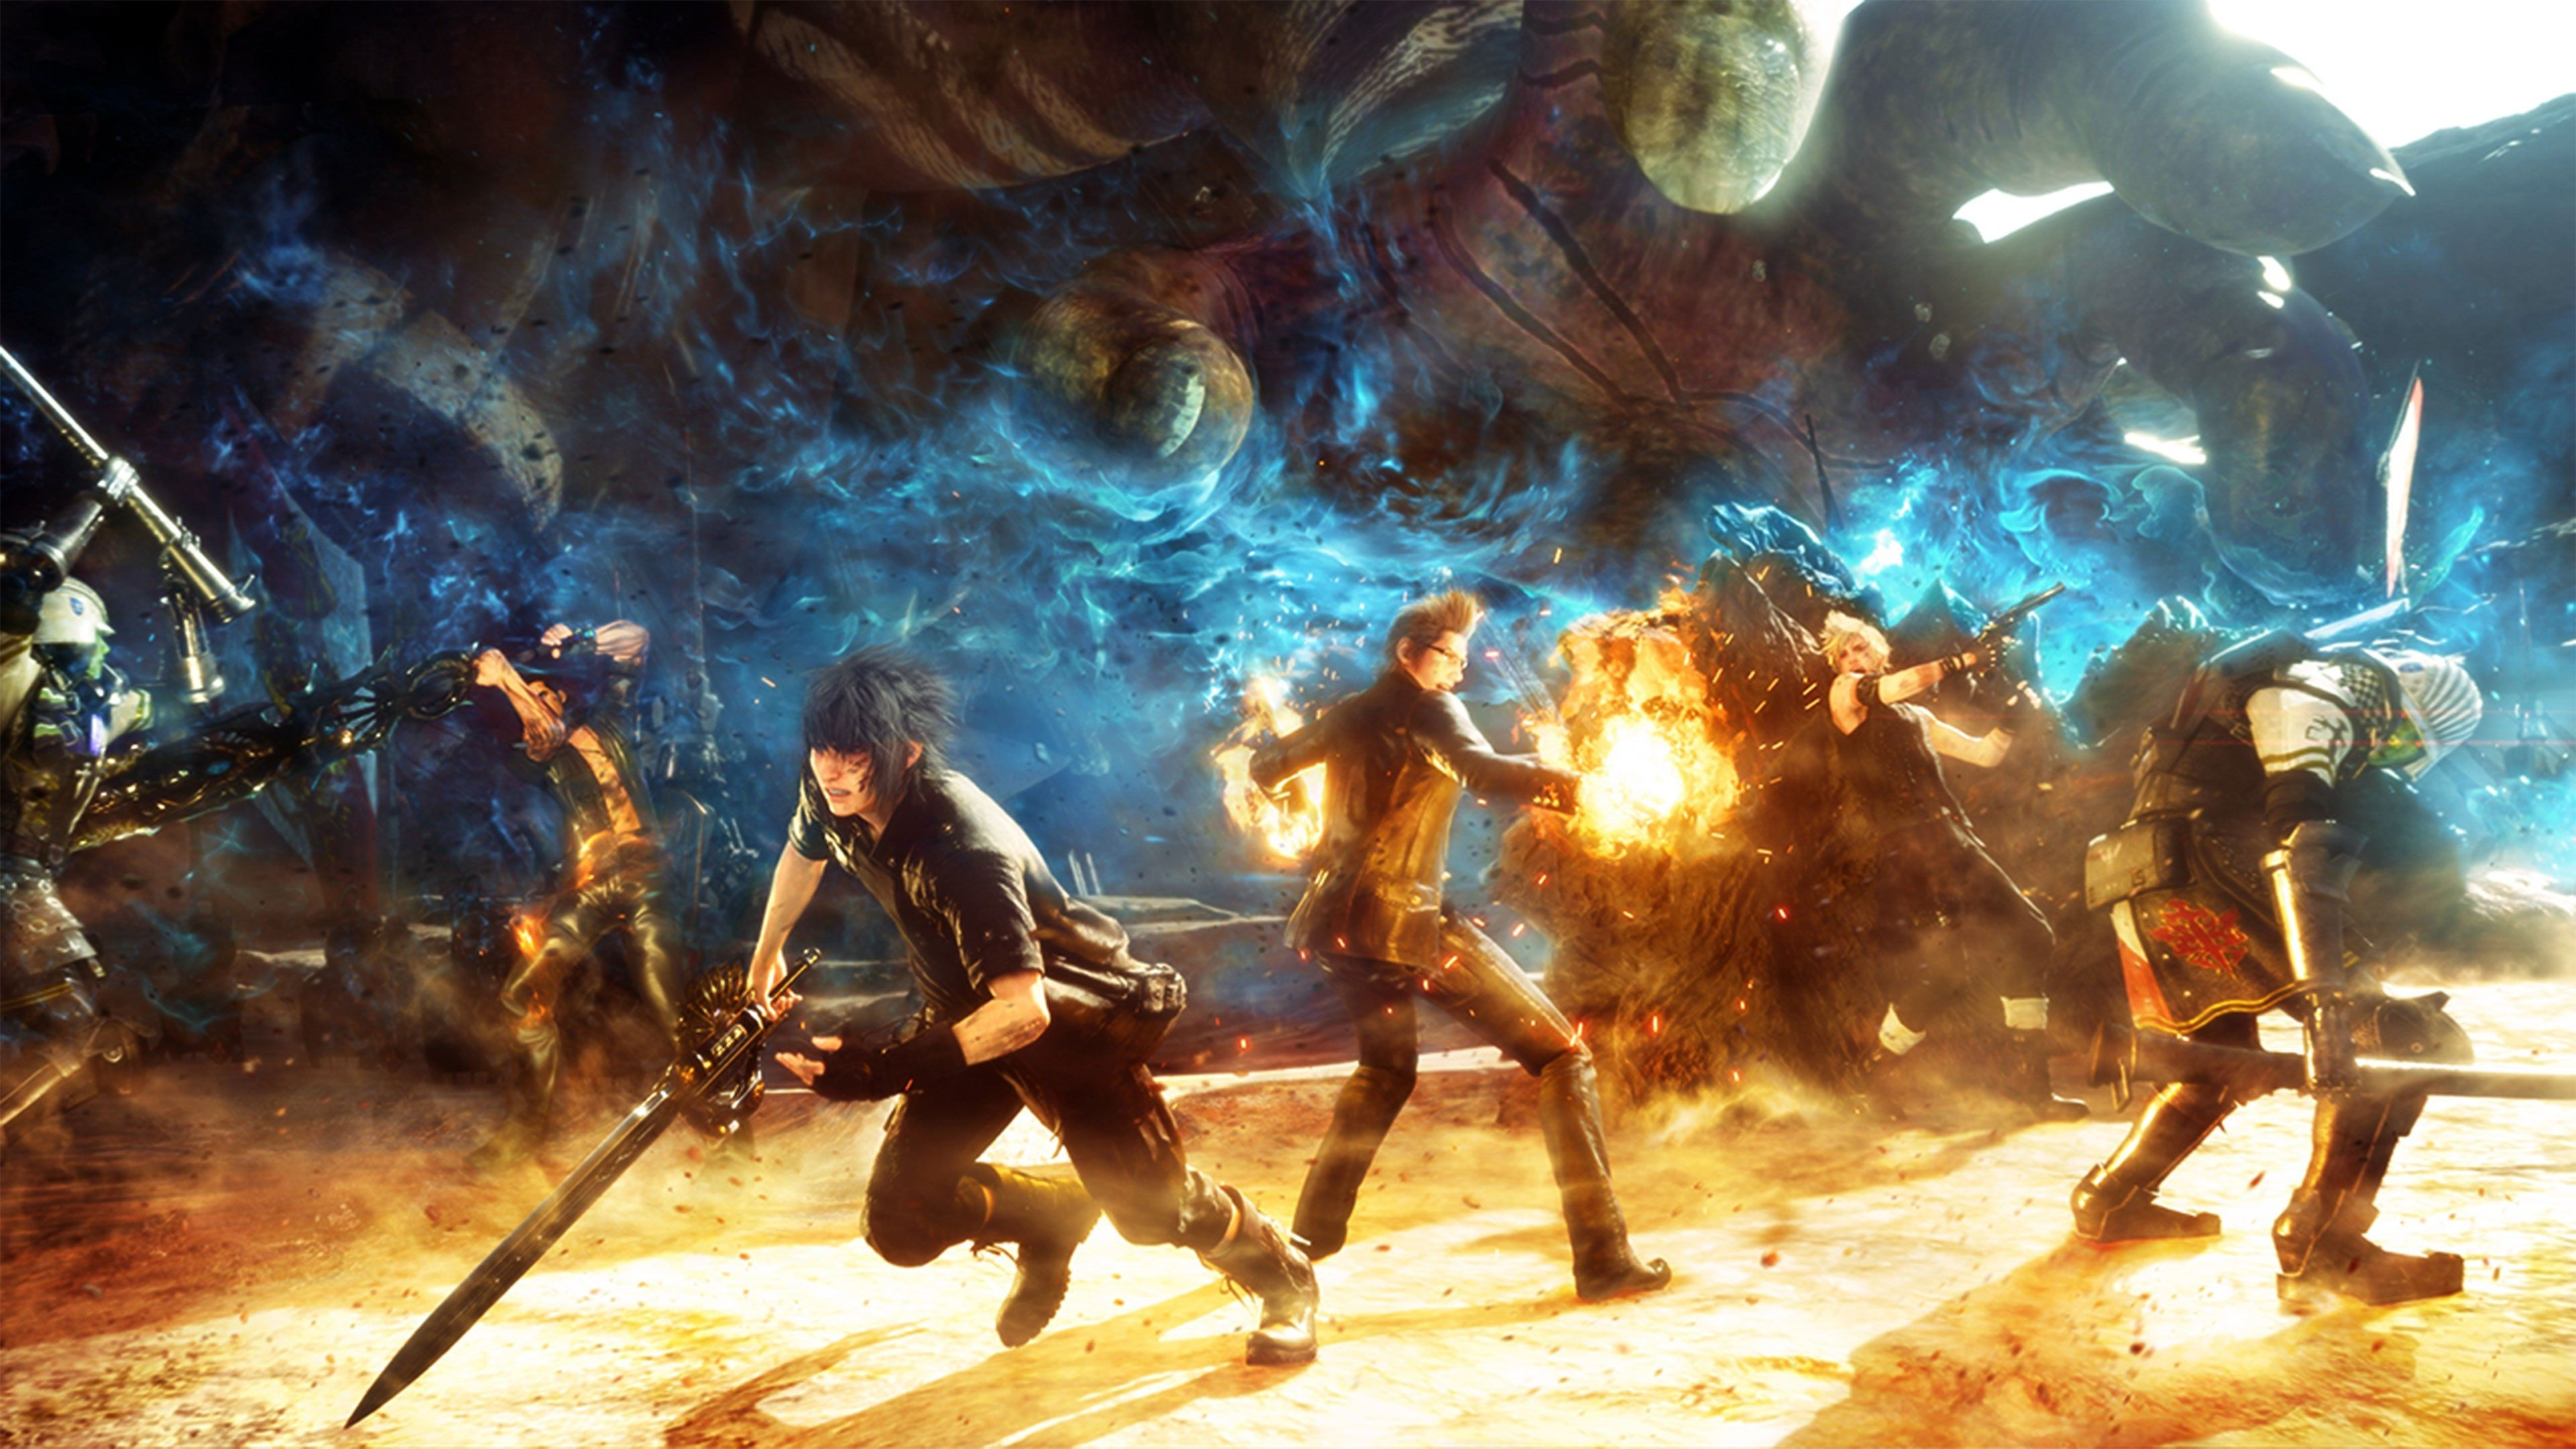 3840x2160 Final Fantasy Xv 4k Wallpaper Download Free Final Fantasy Final Fantasy Xv Final Fantasy 15